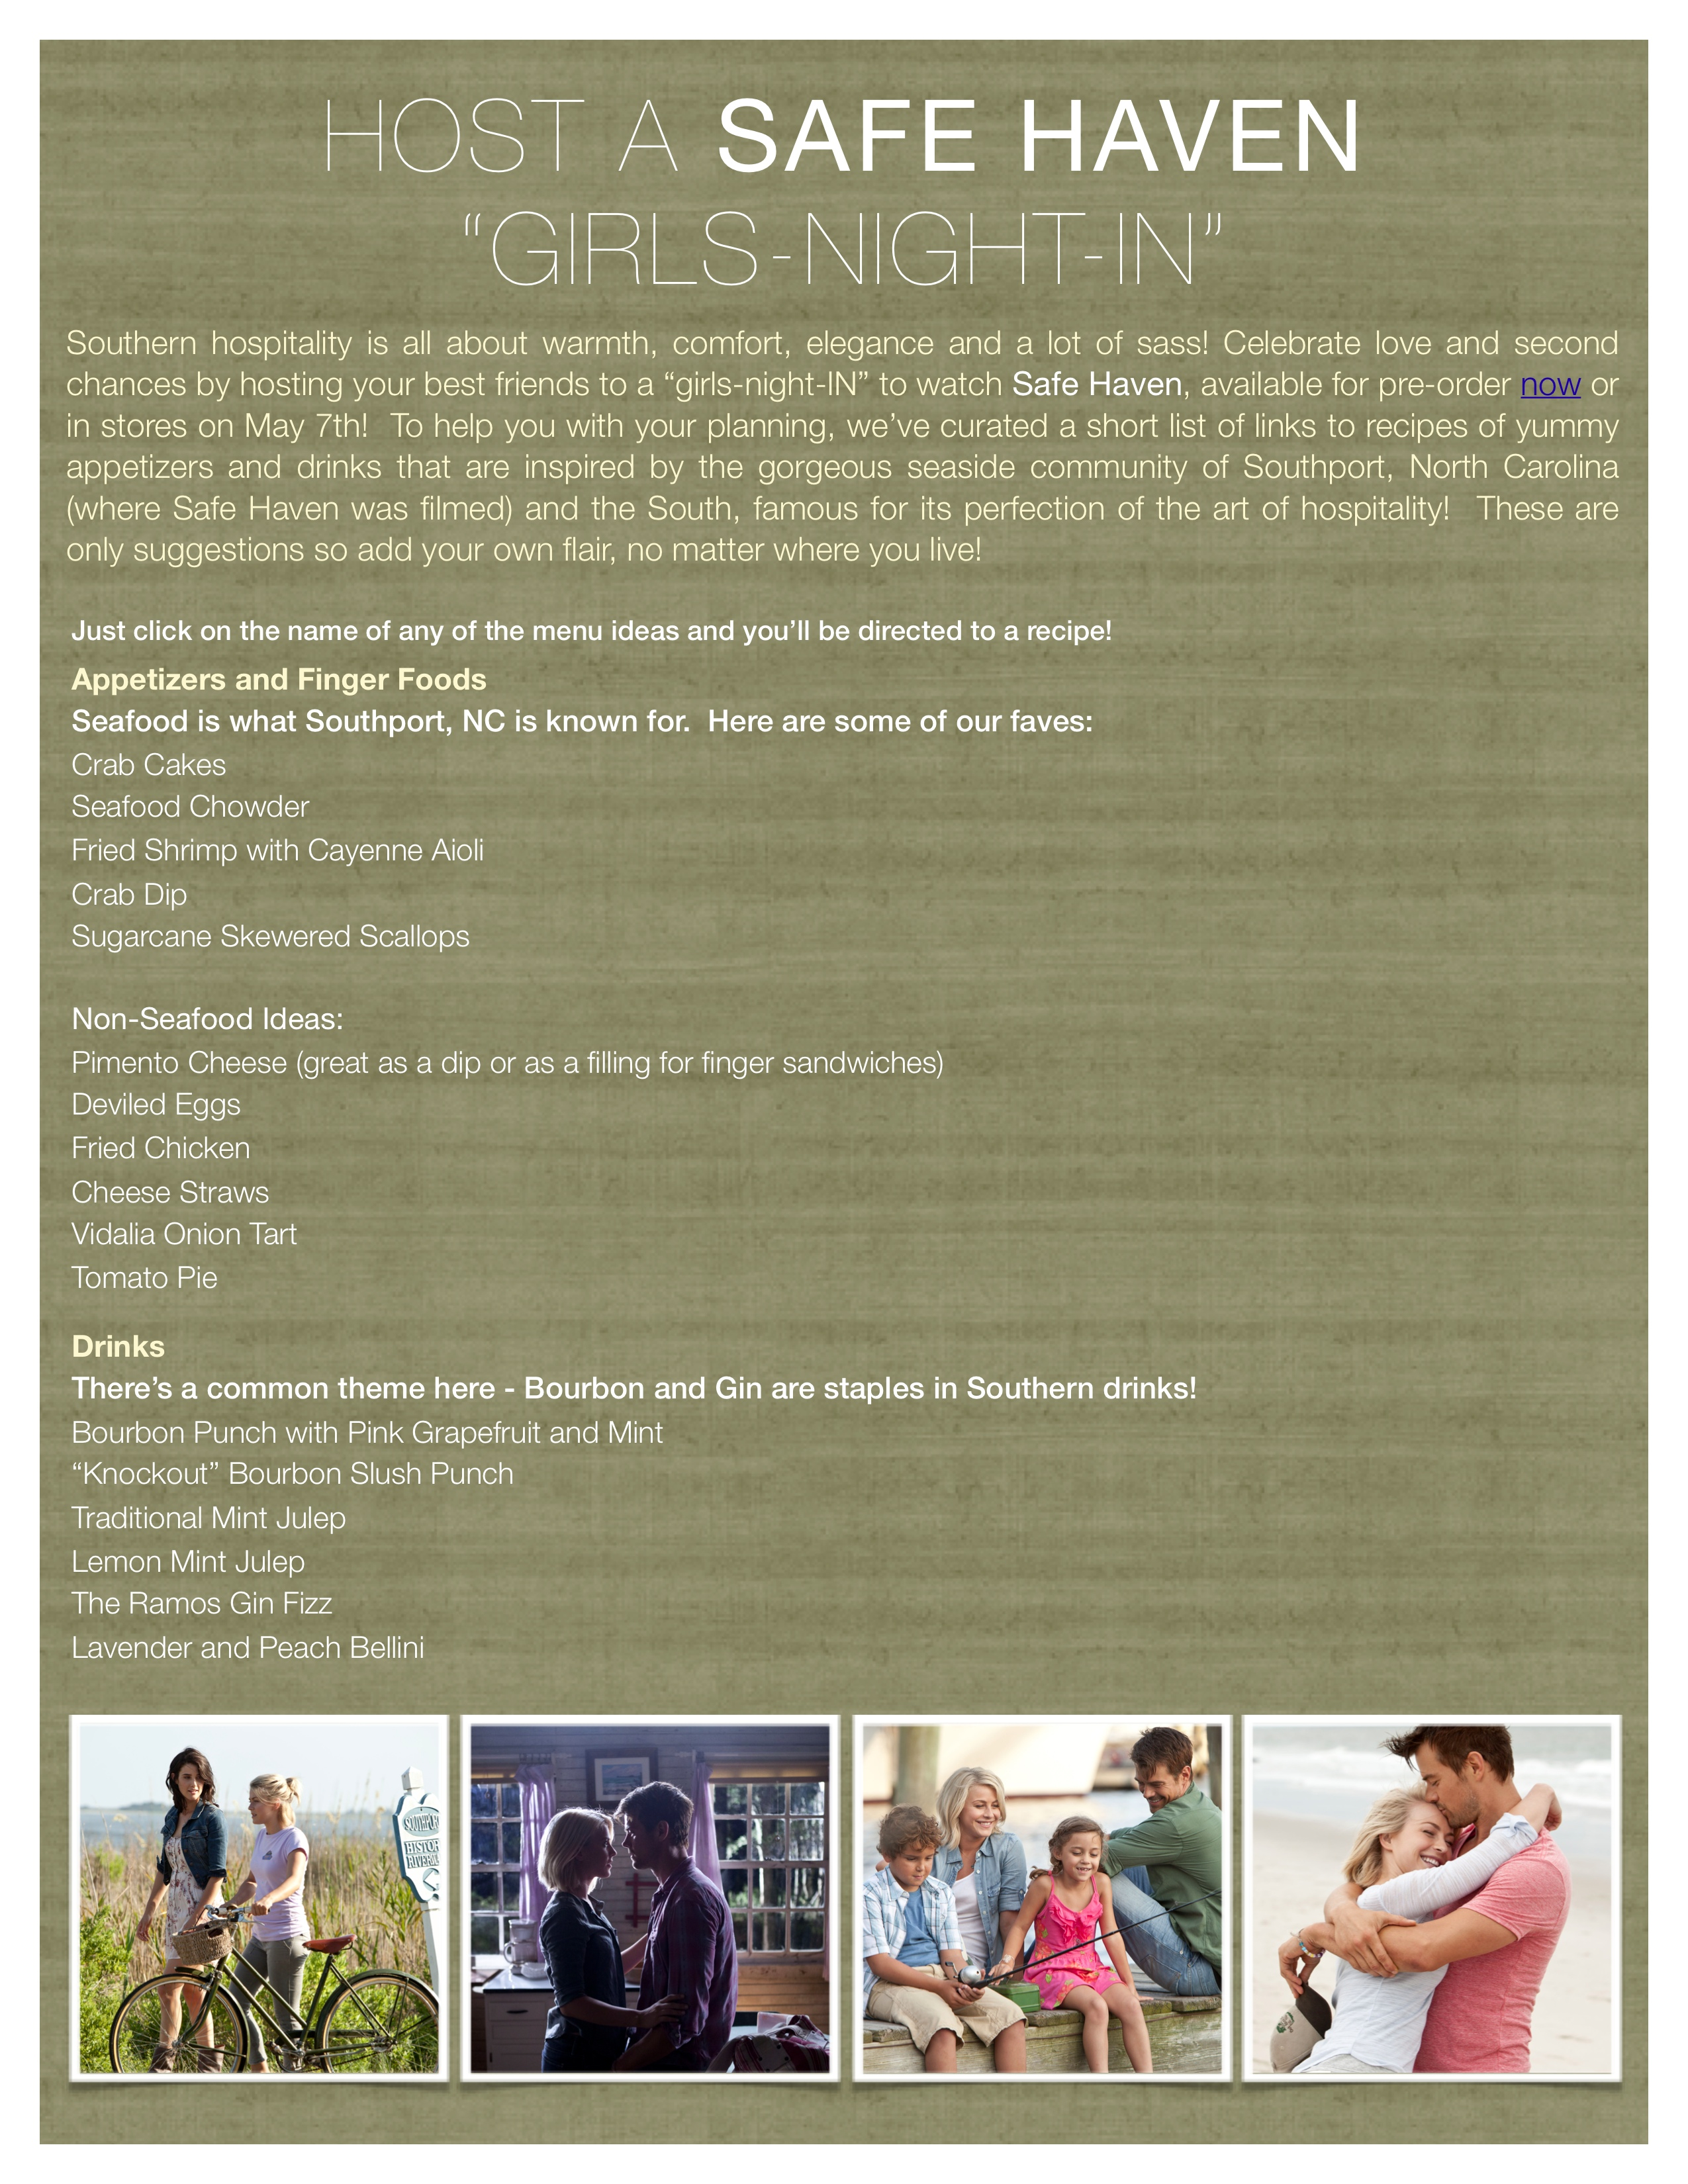 Safe Haven Ultimate Girls-Night-In Party